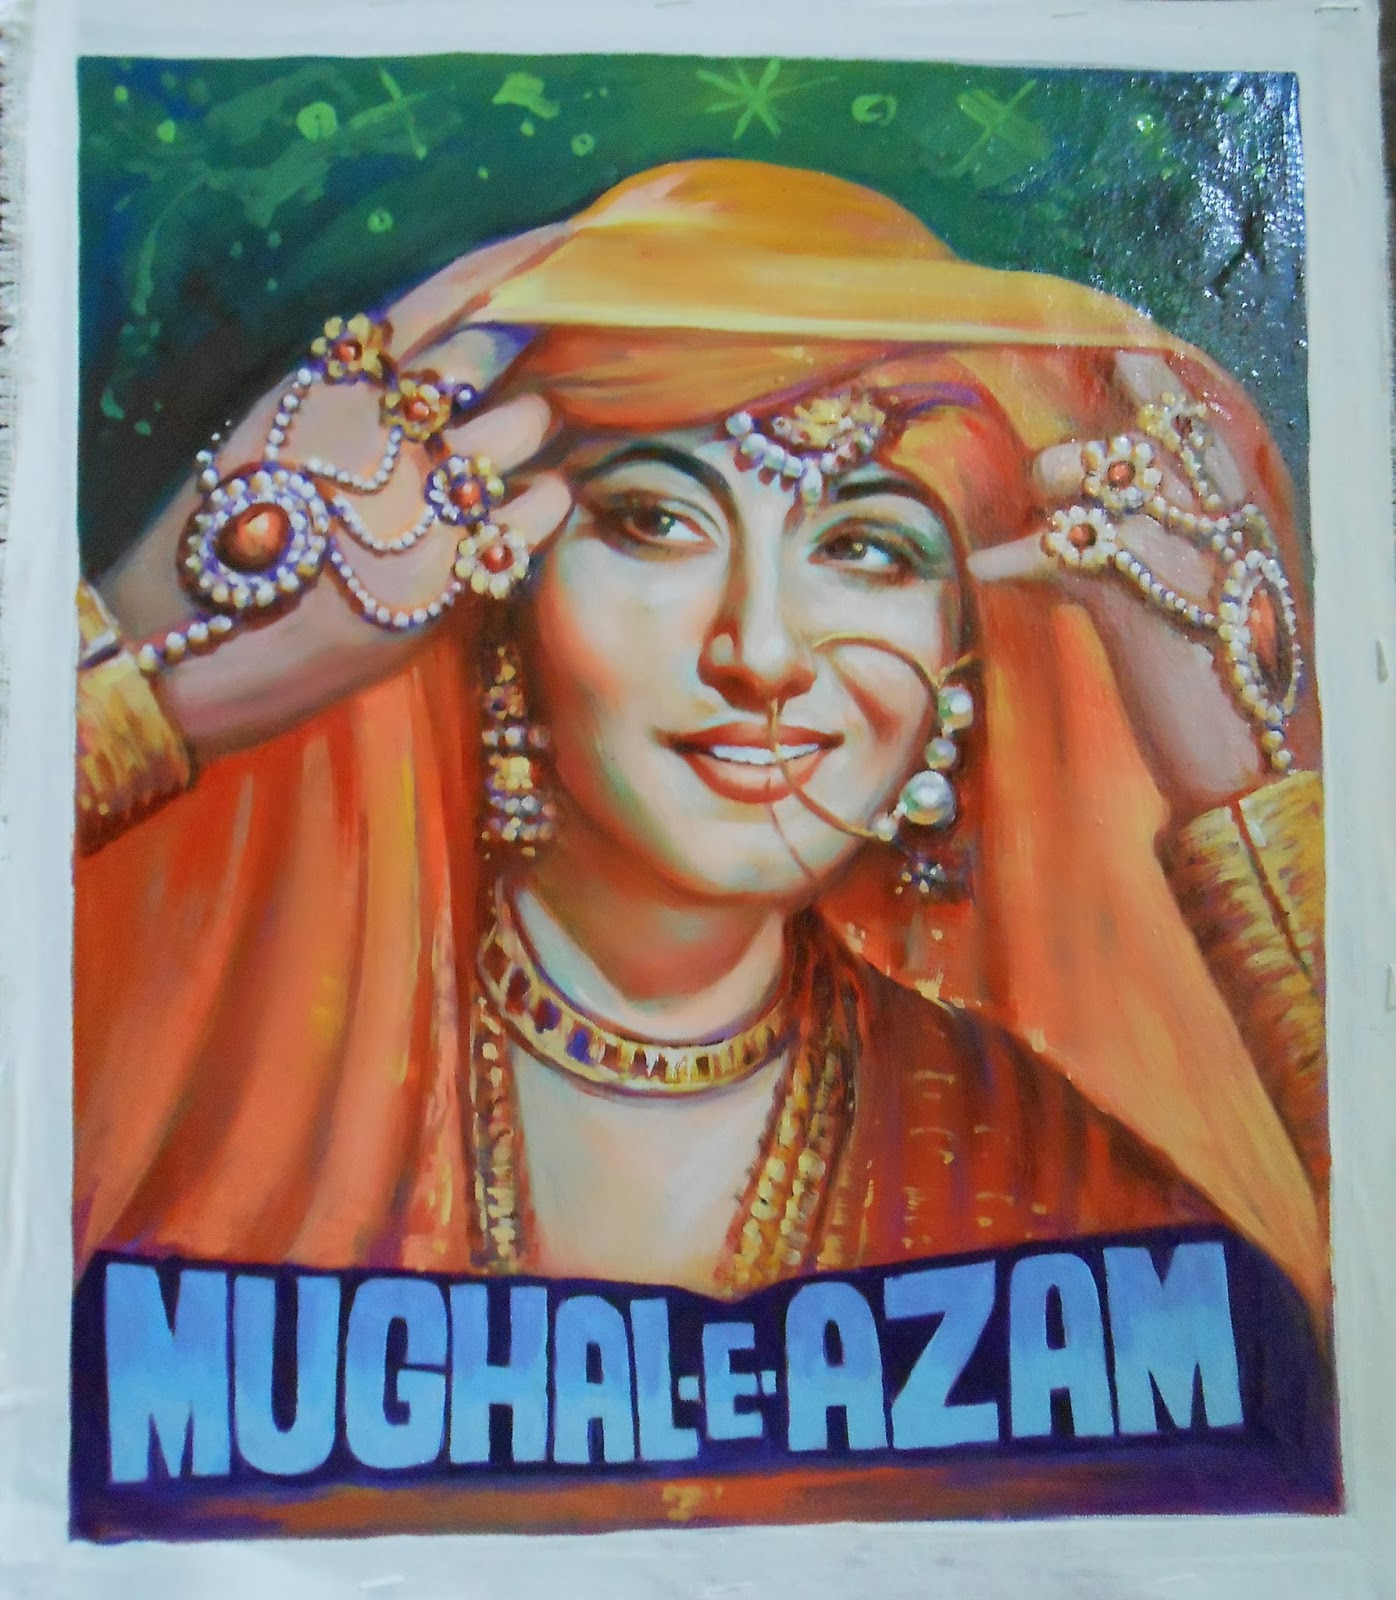 bollywoodpostersstudio hand painted old movie posters